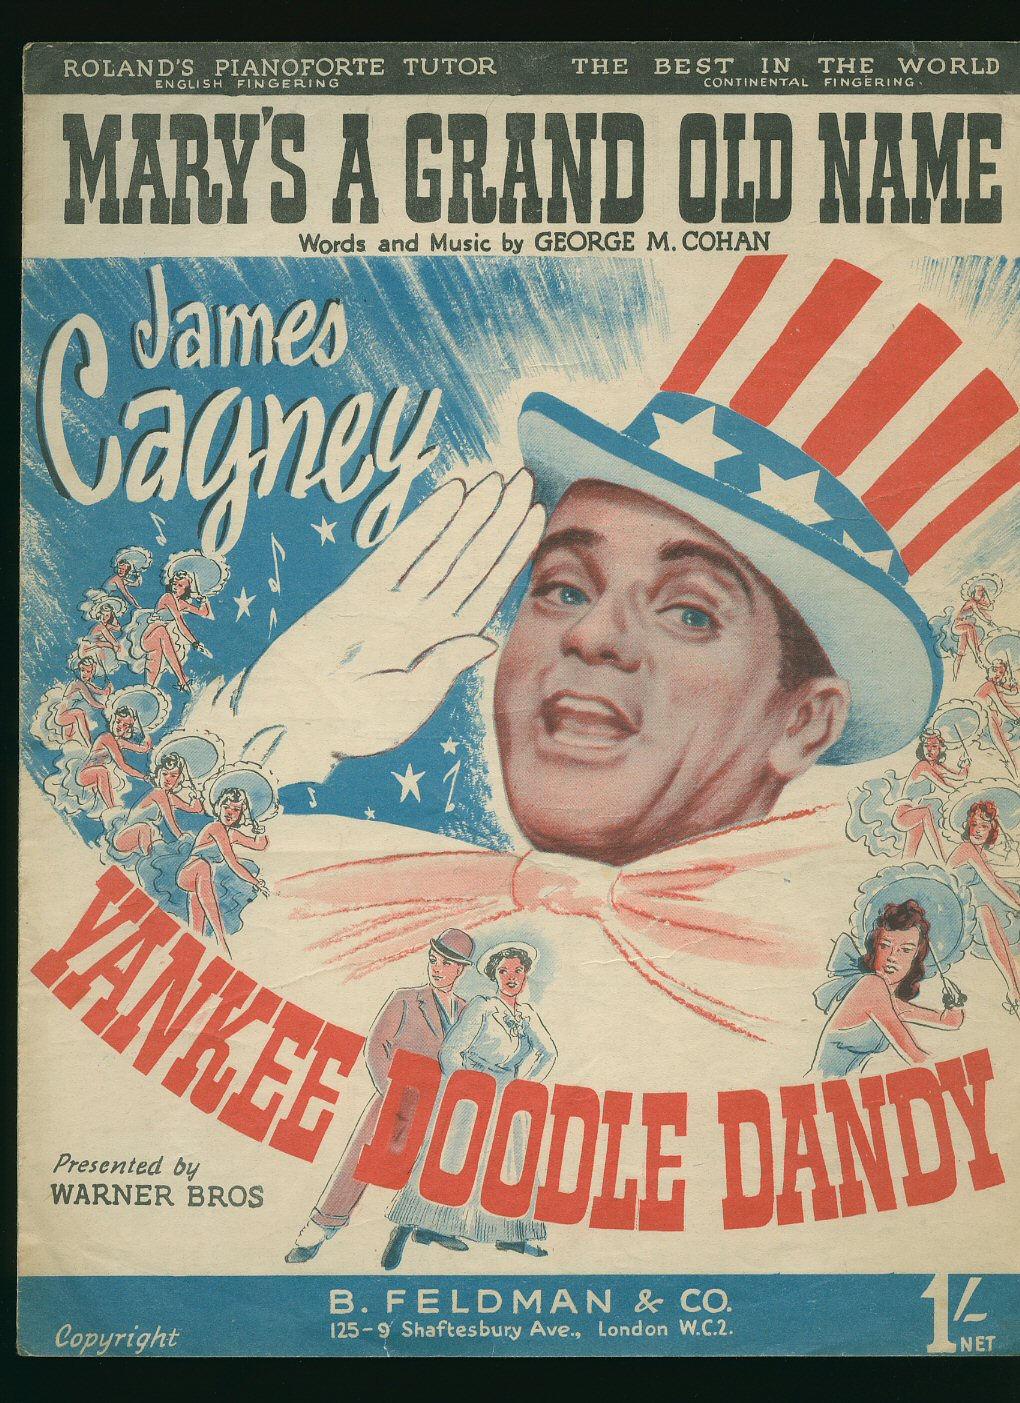 GEORGE M. COHAN [JAMES CAGNEY] PRESENTED BY WARNER BROTHERS - The Yankee Doodle Boy; Yankee Doodle Dandy [Vintage Piano Sheet Music]